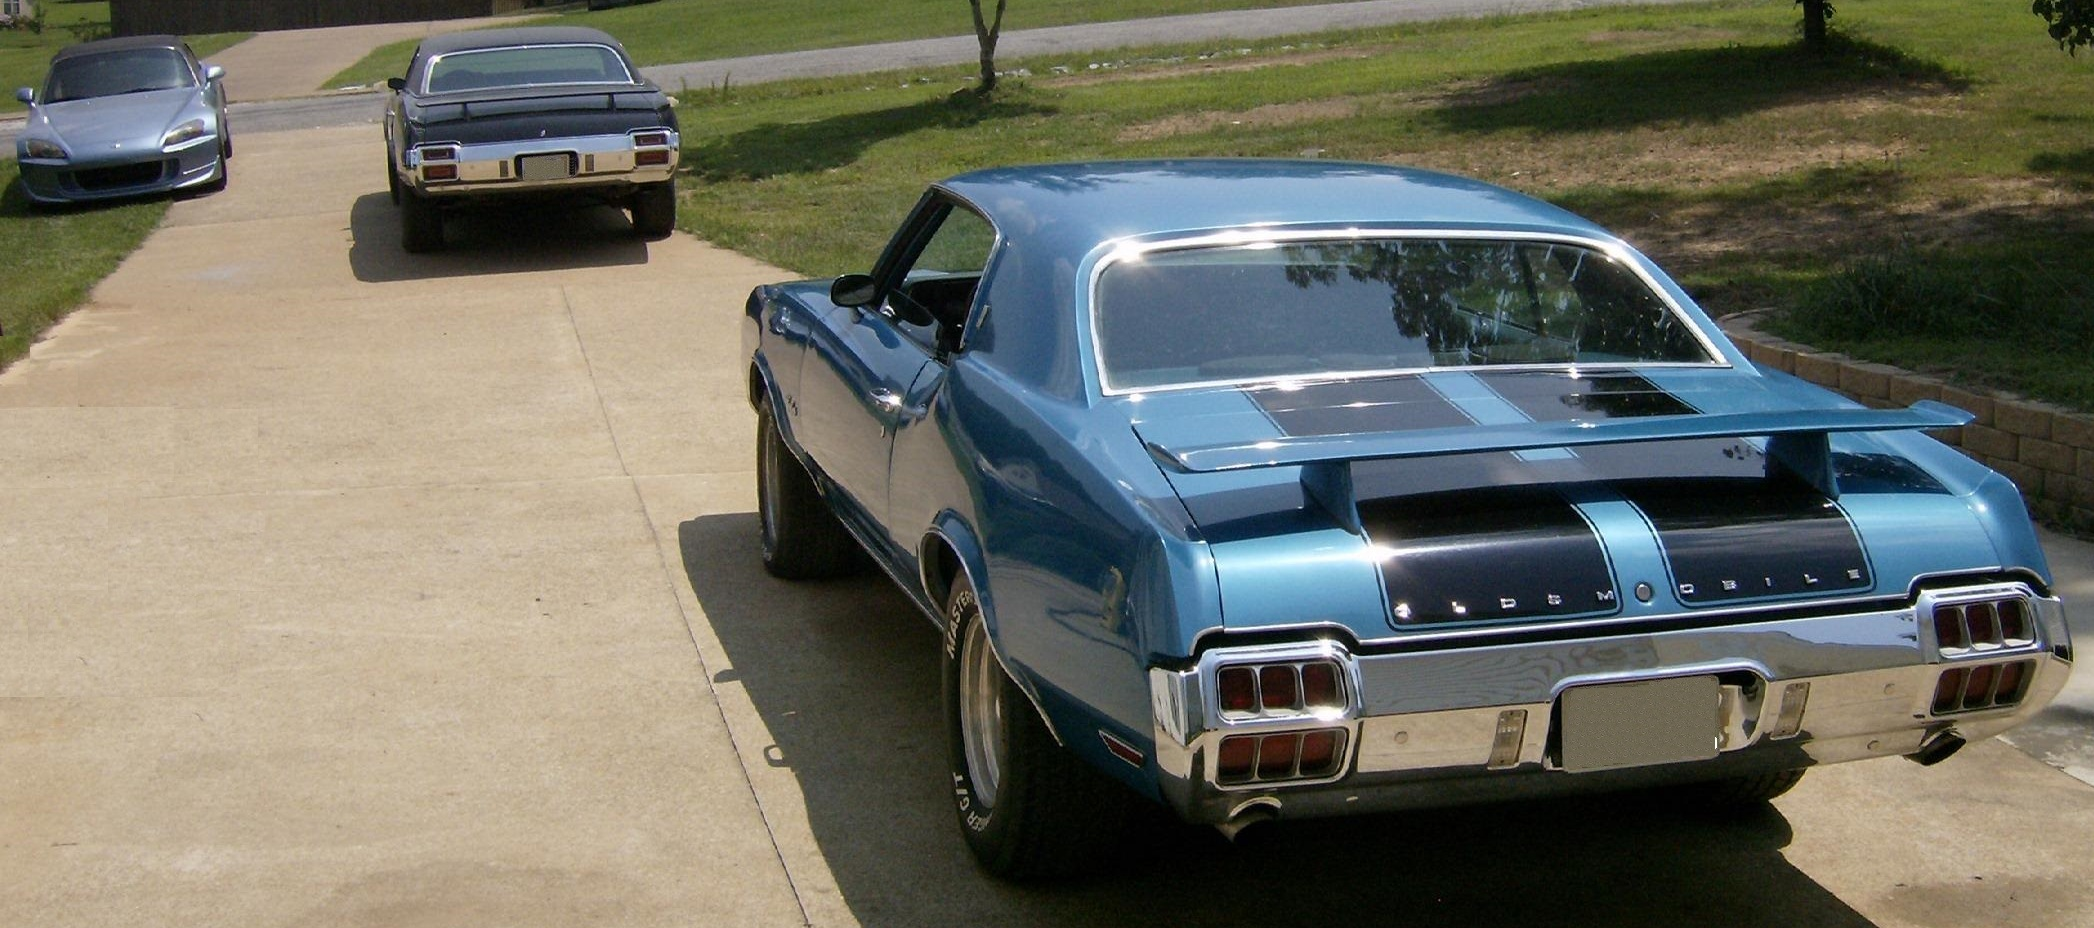 Click image for larger version  Name:My Blue 72 Cutlass (16).JPG Views:113 Size:531.5 KB ID:151972